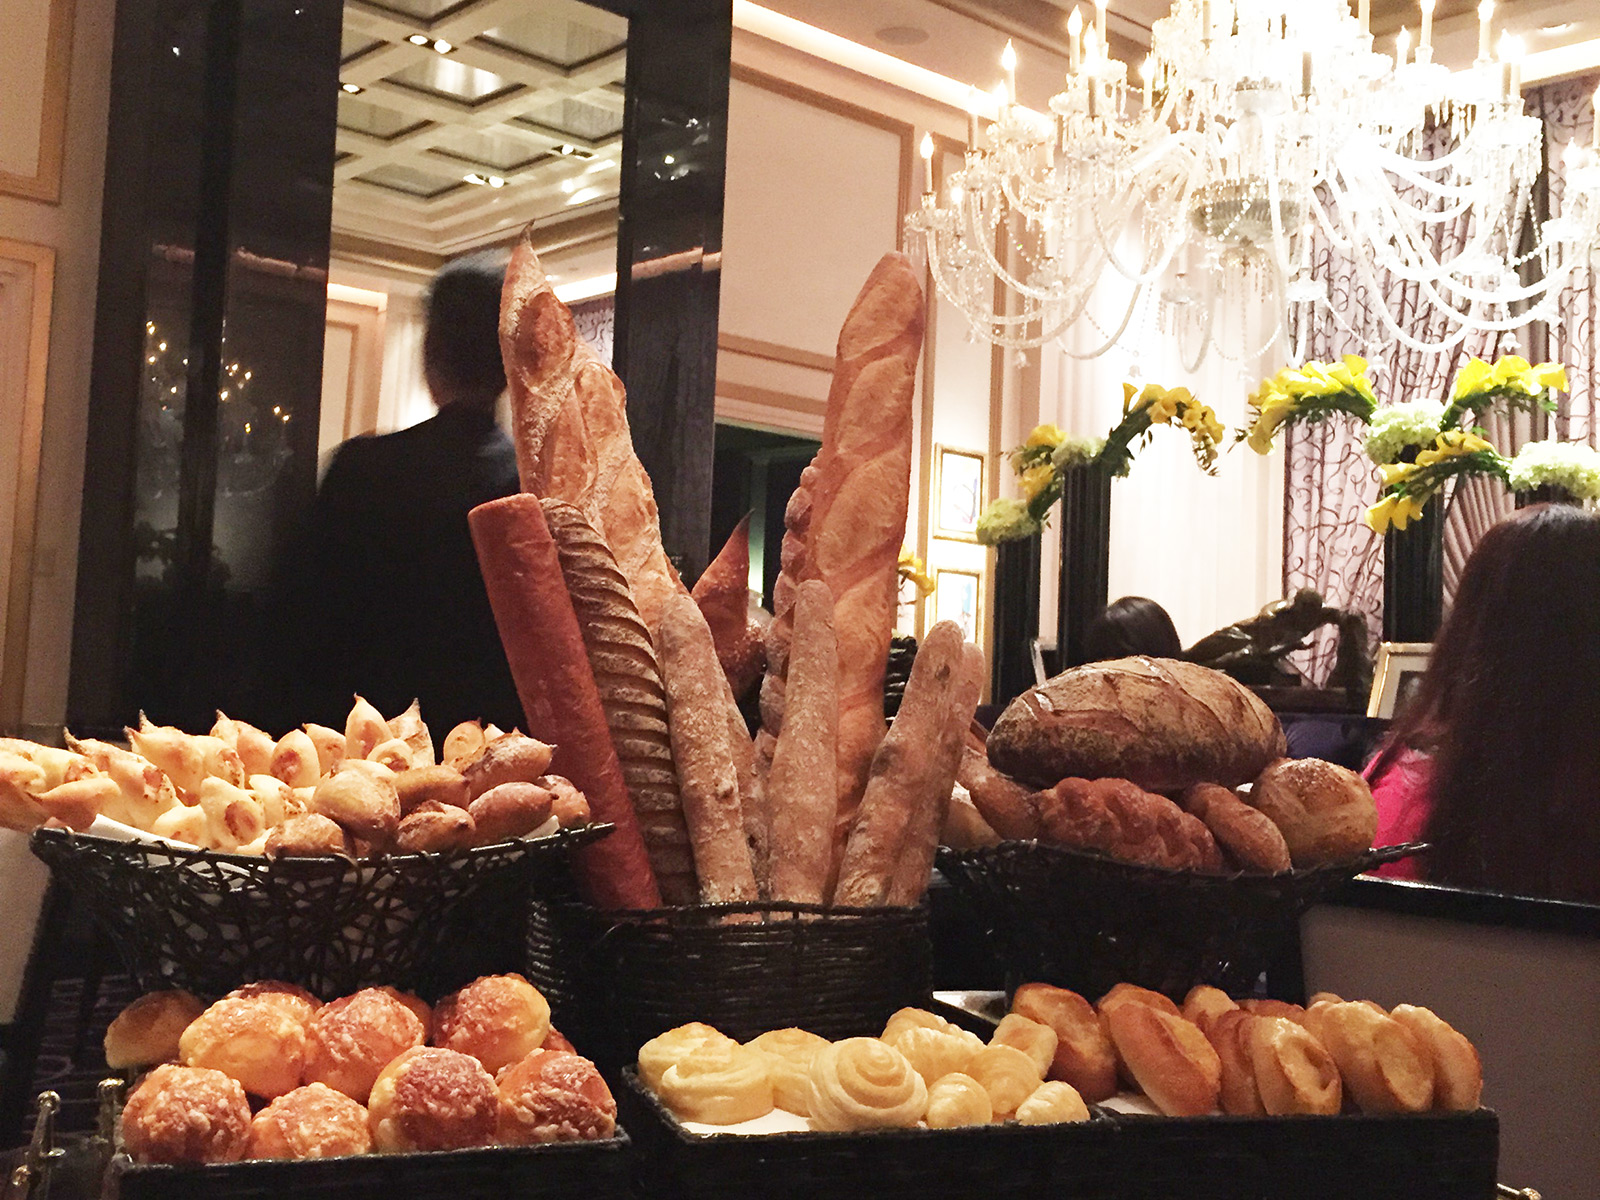 In Praise of Joël Robuchon's Bread Cart